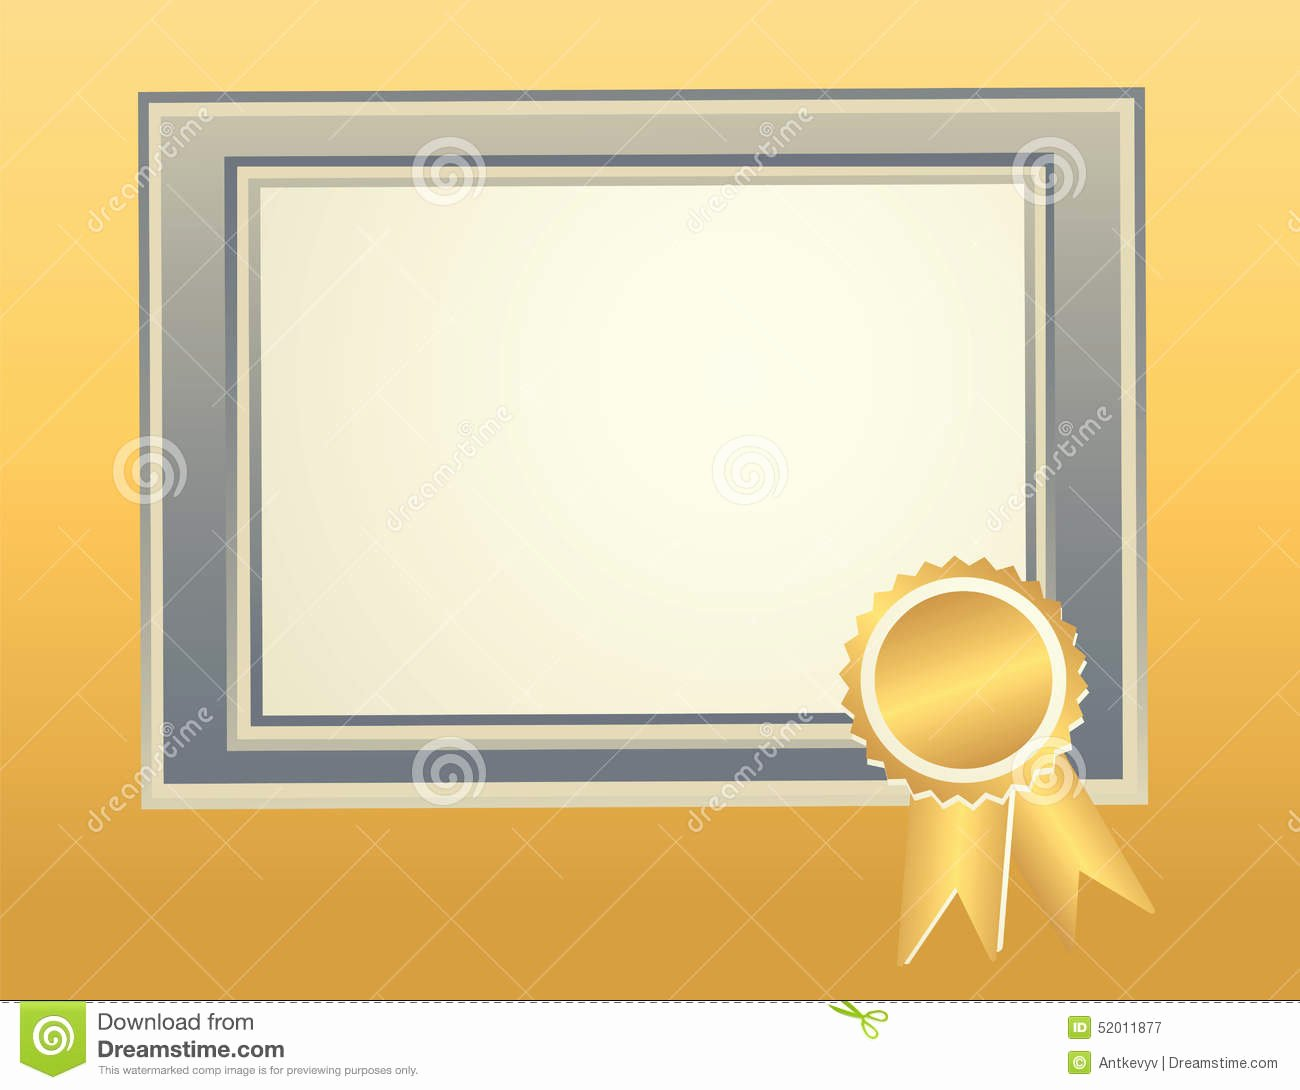 Employee Of the Month Photo Frame Template Beautiful Blank Frame Template Stock Vector Image Of Blank Awards